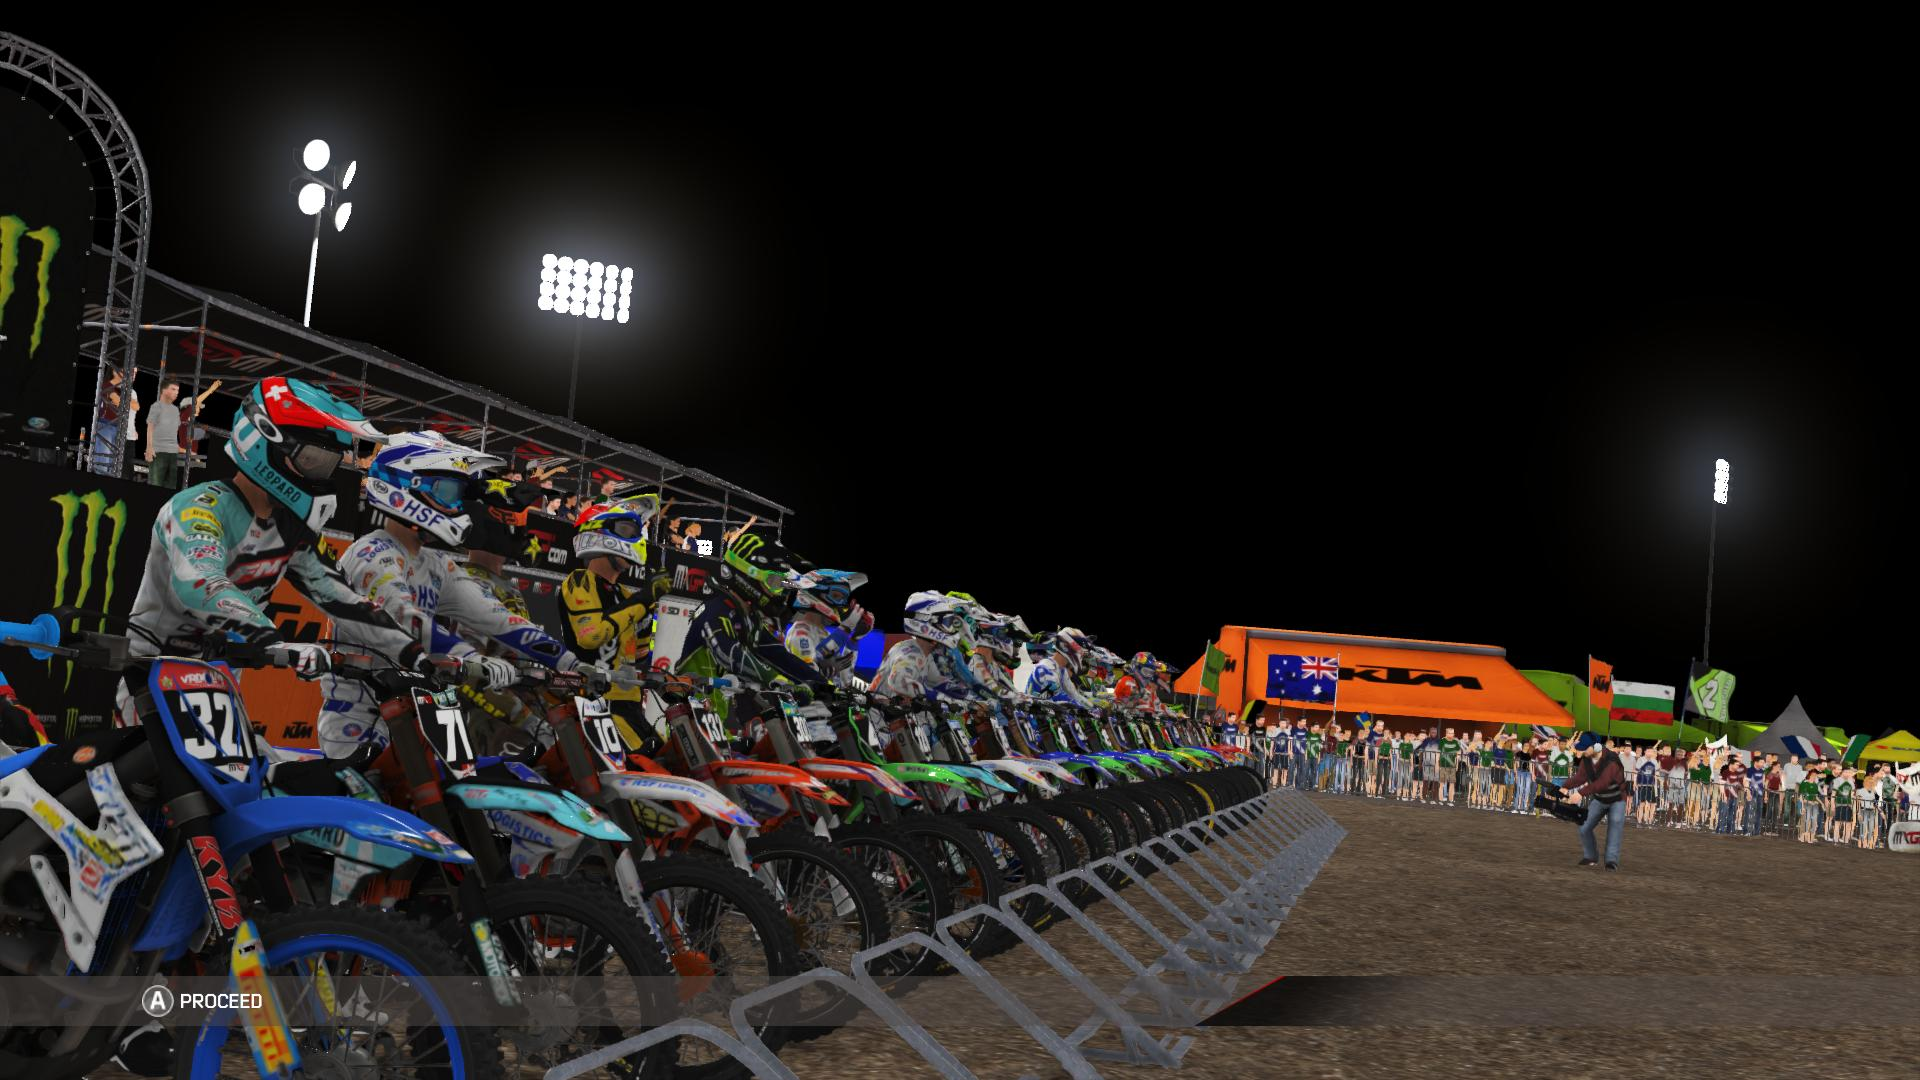 Mxgp2 The Official Motocross Videogame Review Game Ps4 Mx Gp 2 Mxgp 2x64 2016 04 23 21 43 35 99 Sound When Listening To Sounds